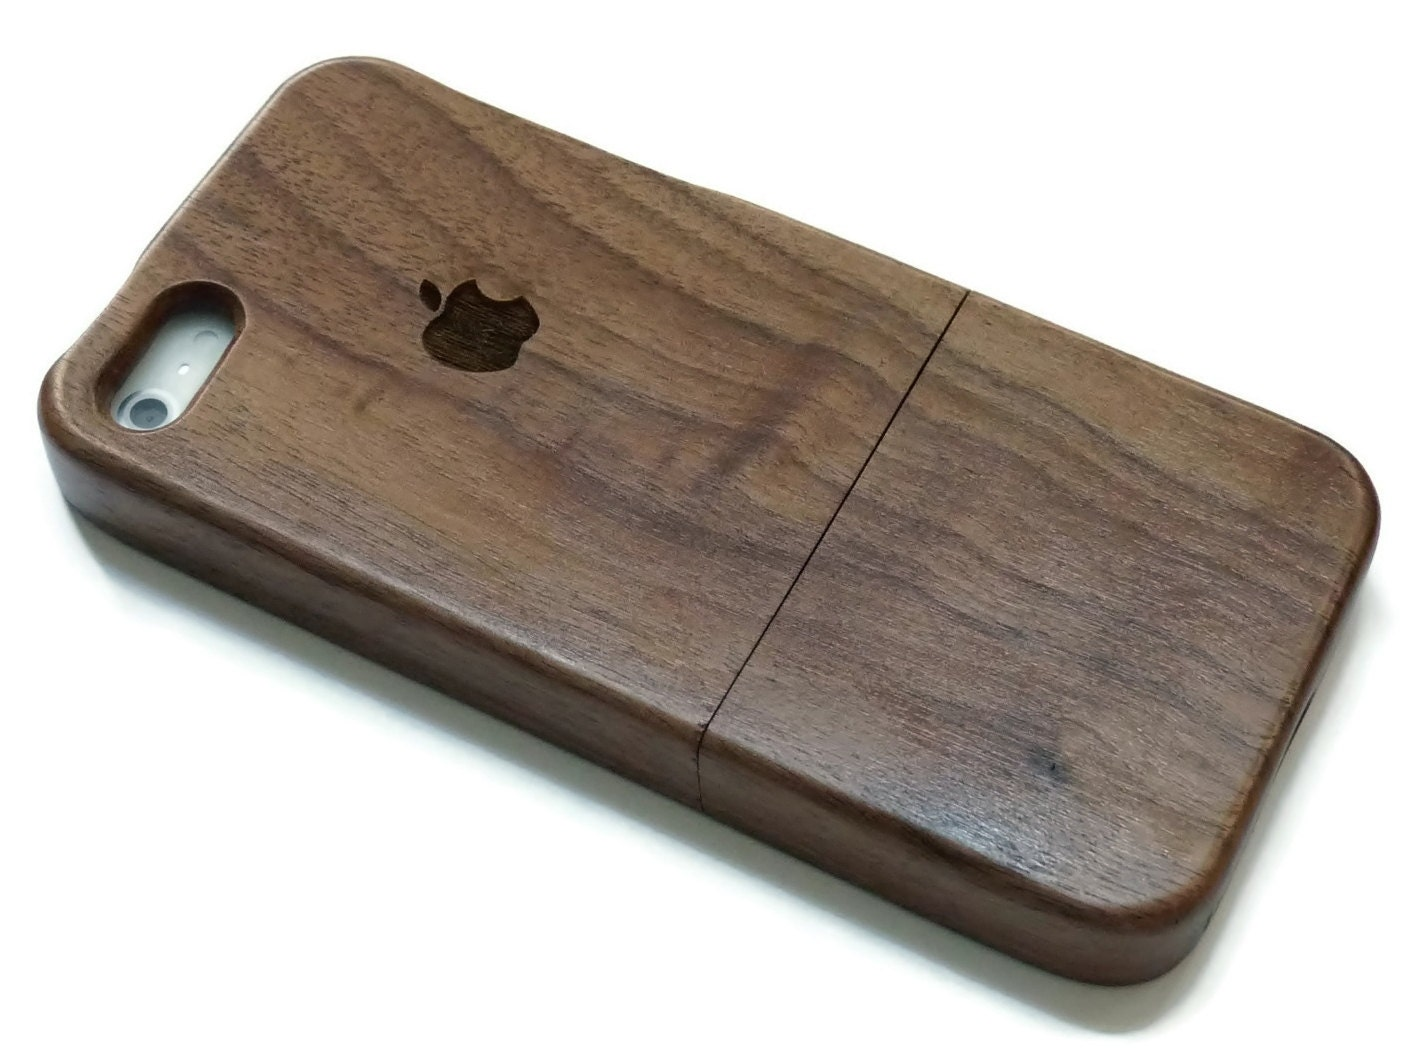 Iphone 6 case wood wooden iphone 6 case walnut cherry or